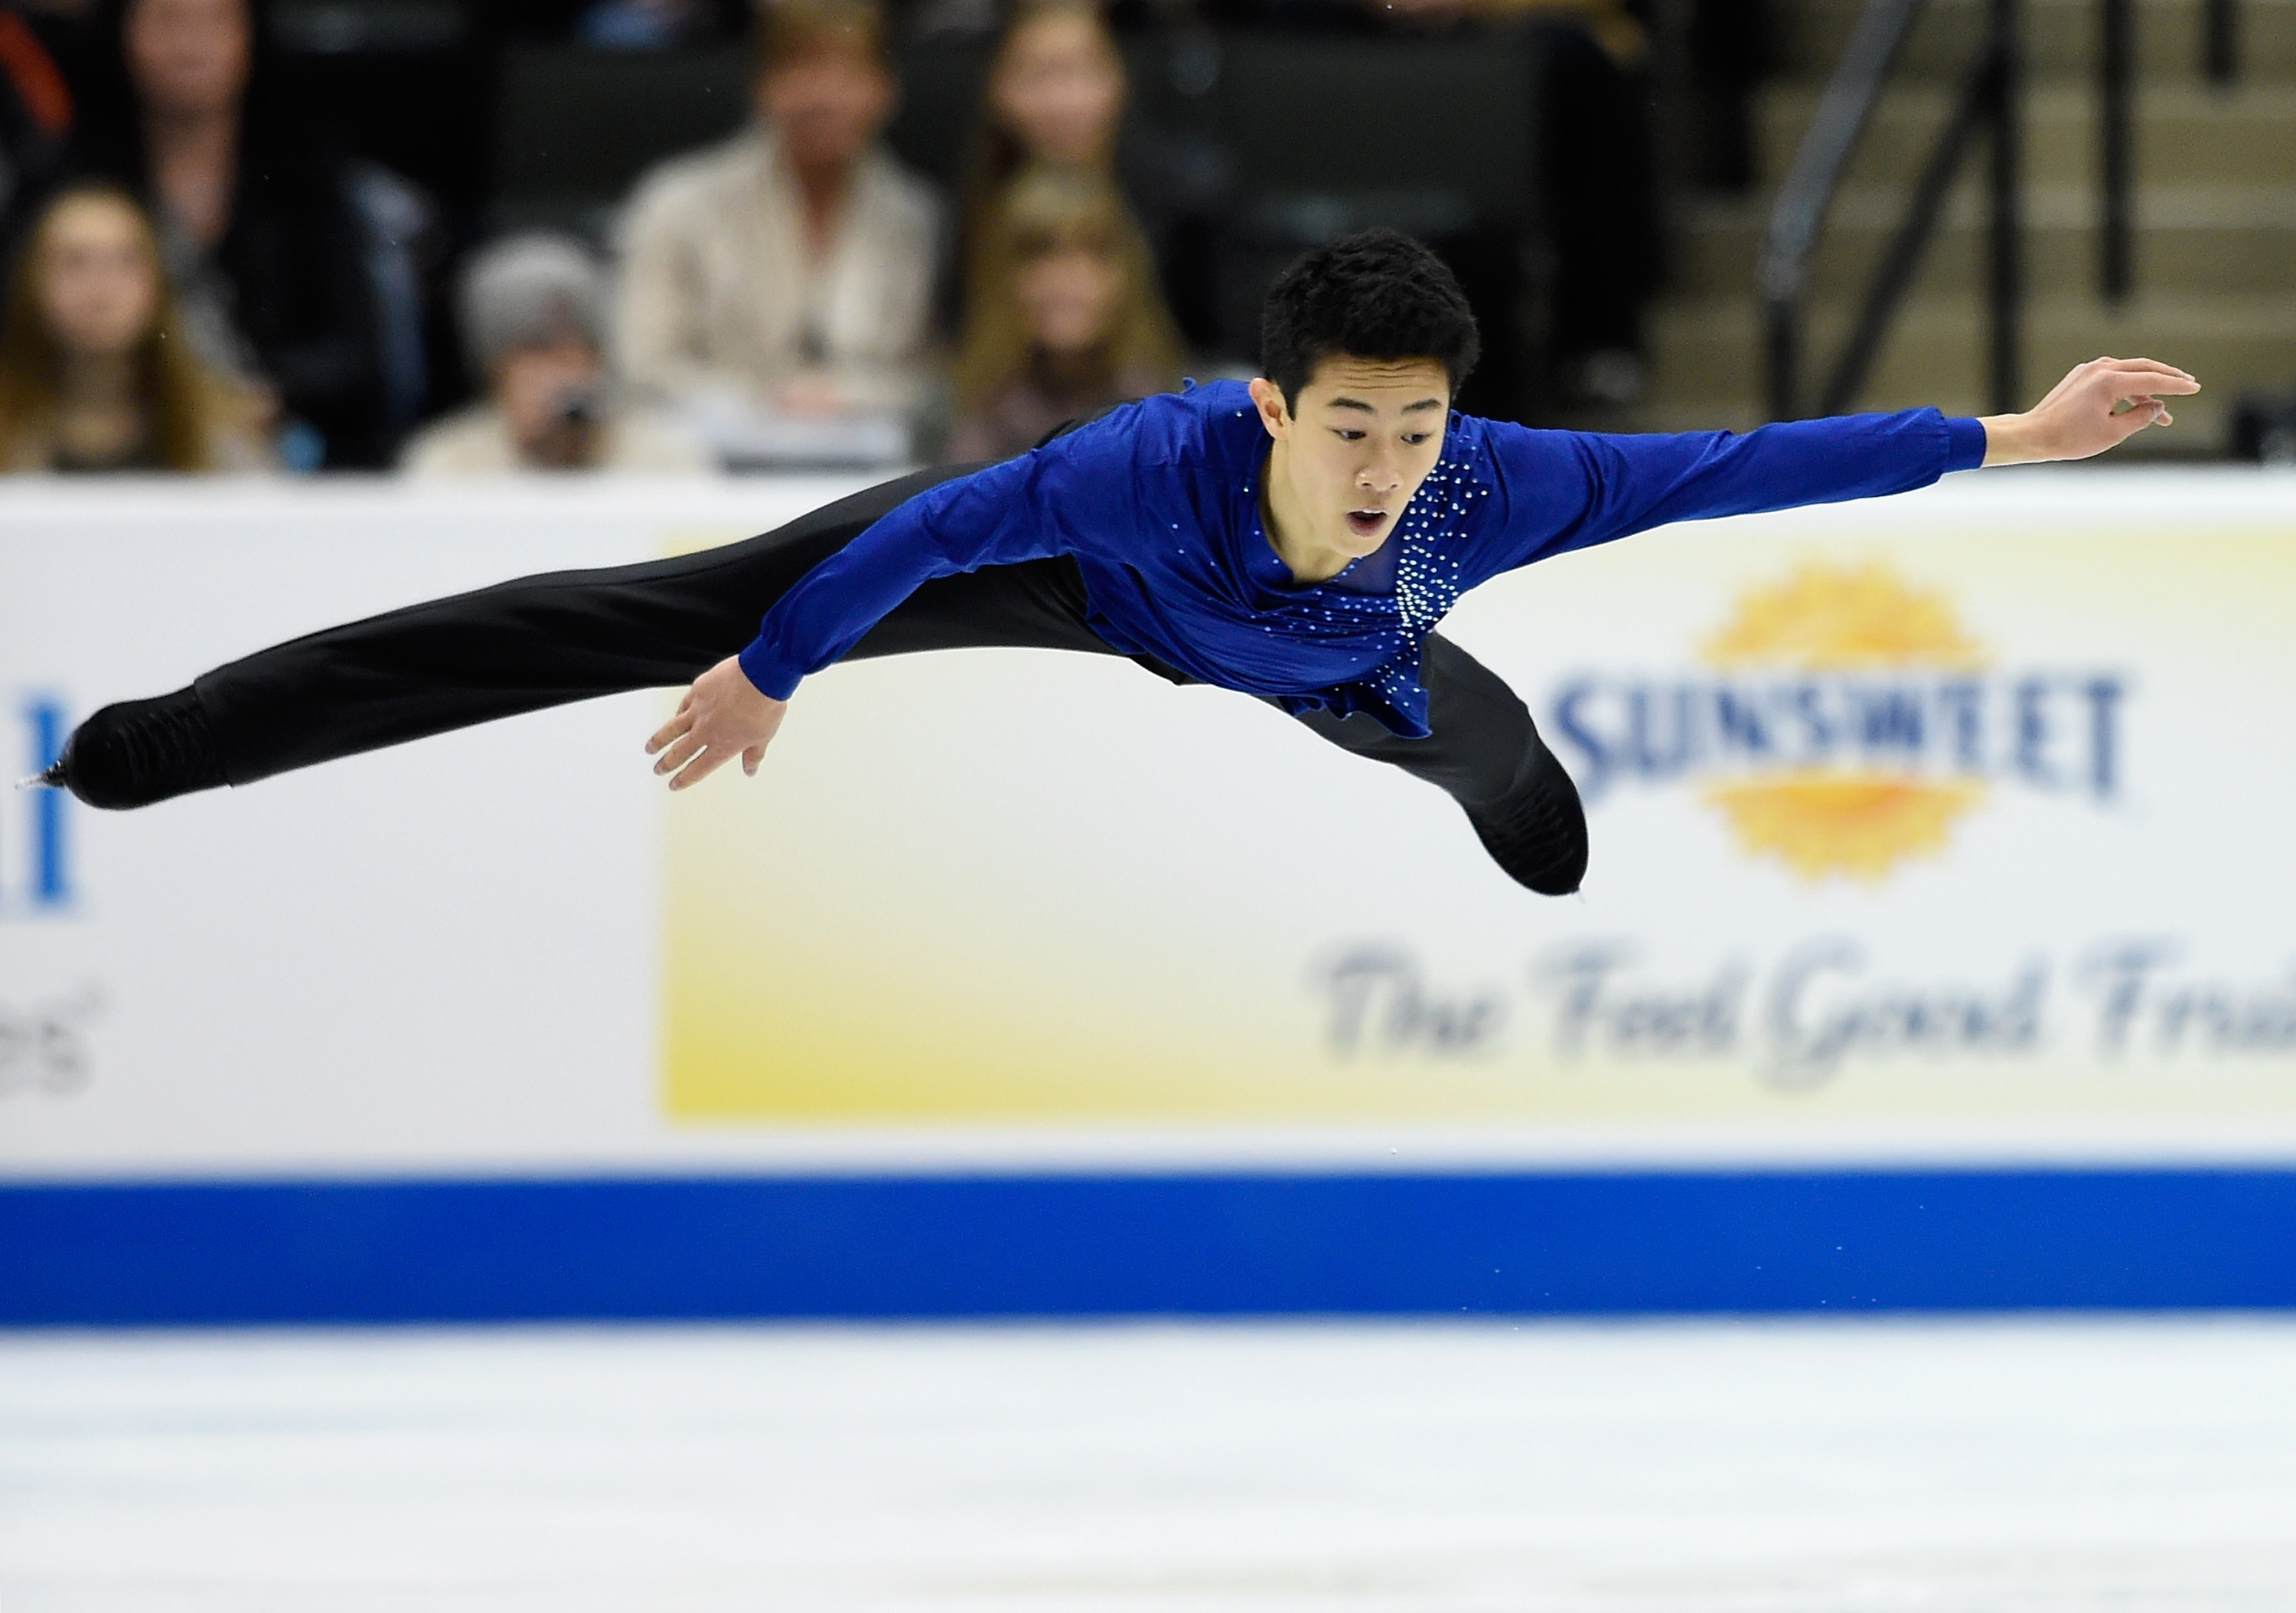 Will Steady Resolve Be Enough To Land Evan Lysacek The Gold